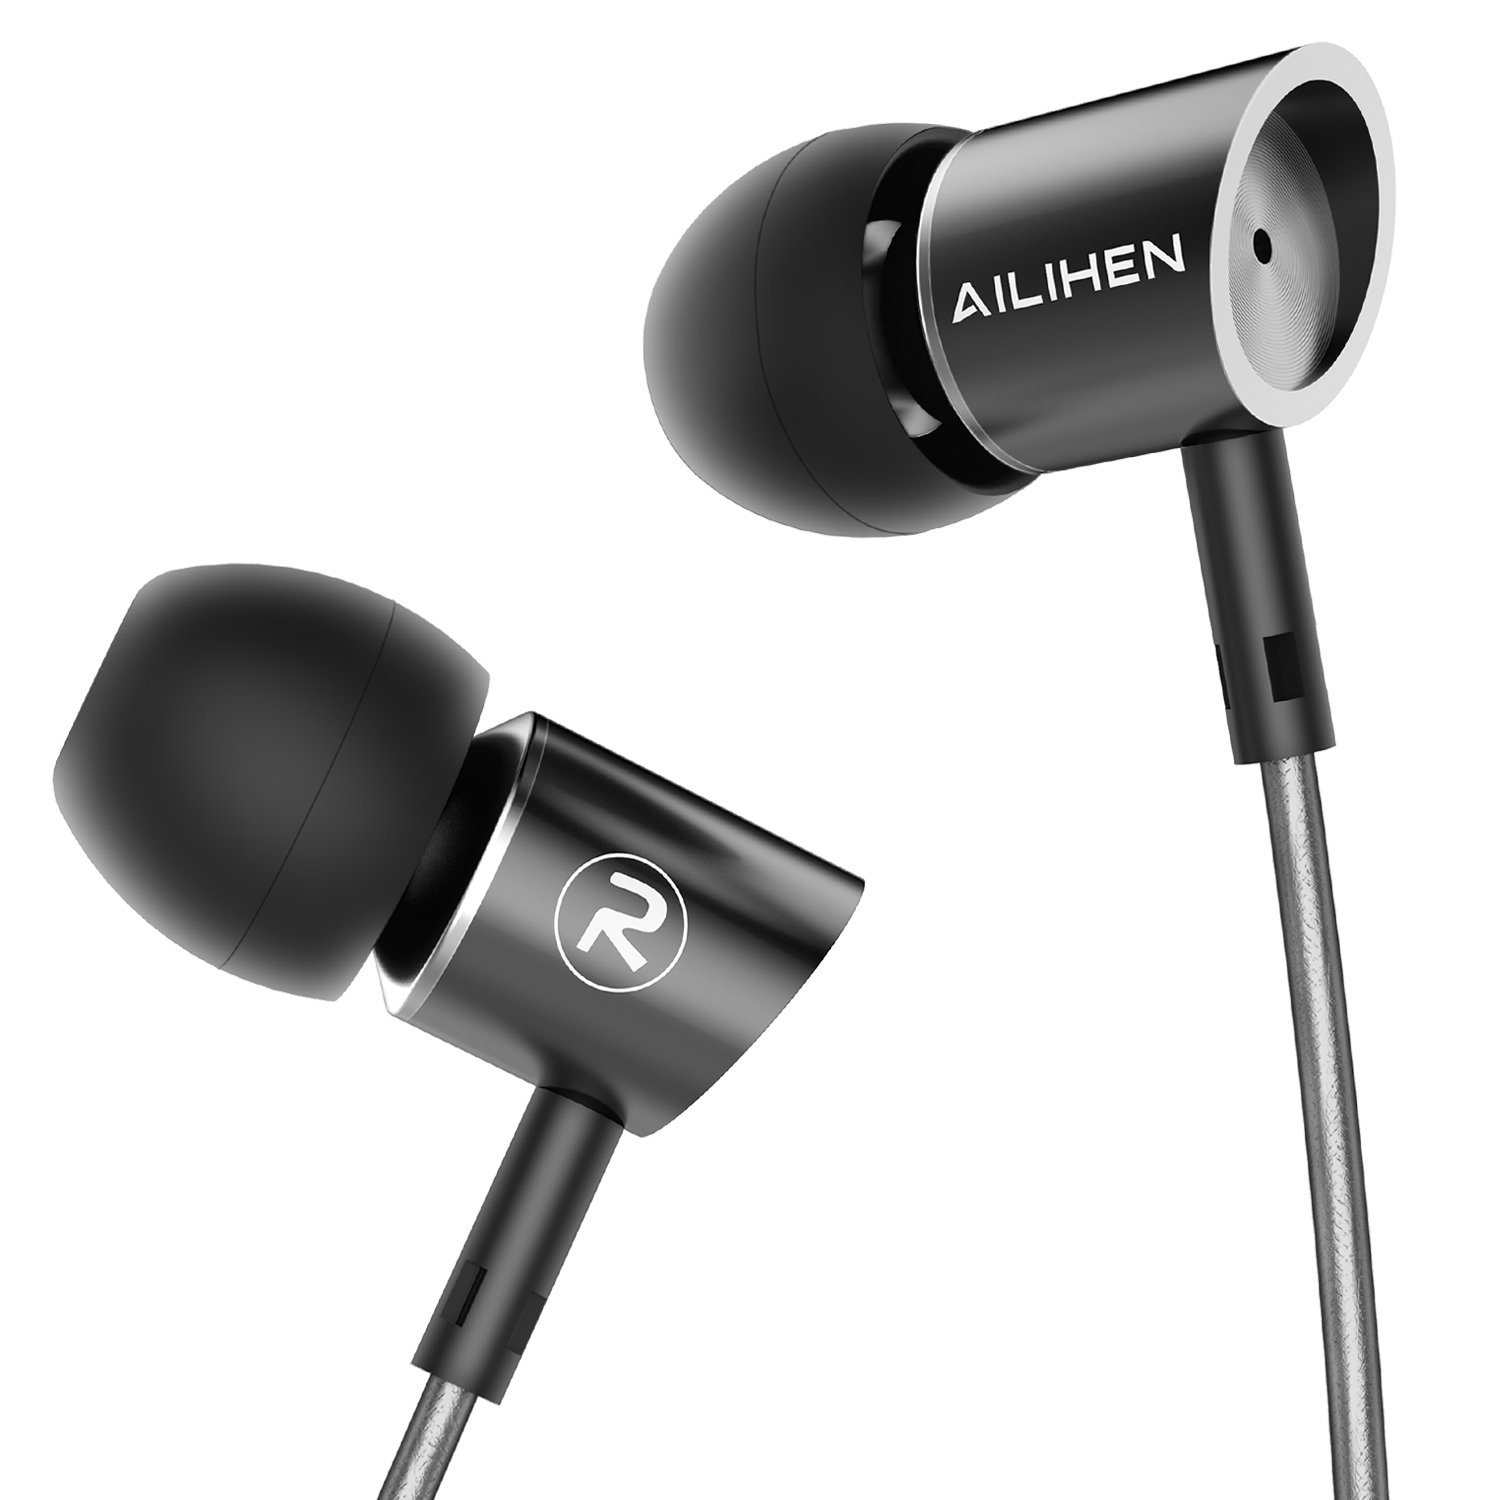 AILIHEN Metal Earbuds with Microphone In Ear Headphones Wired Earphones for Android/IOS Cell Phones iPad iPod Laptop Tablet Computer by AILIHEN (Image #1)